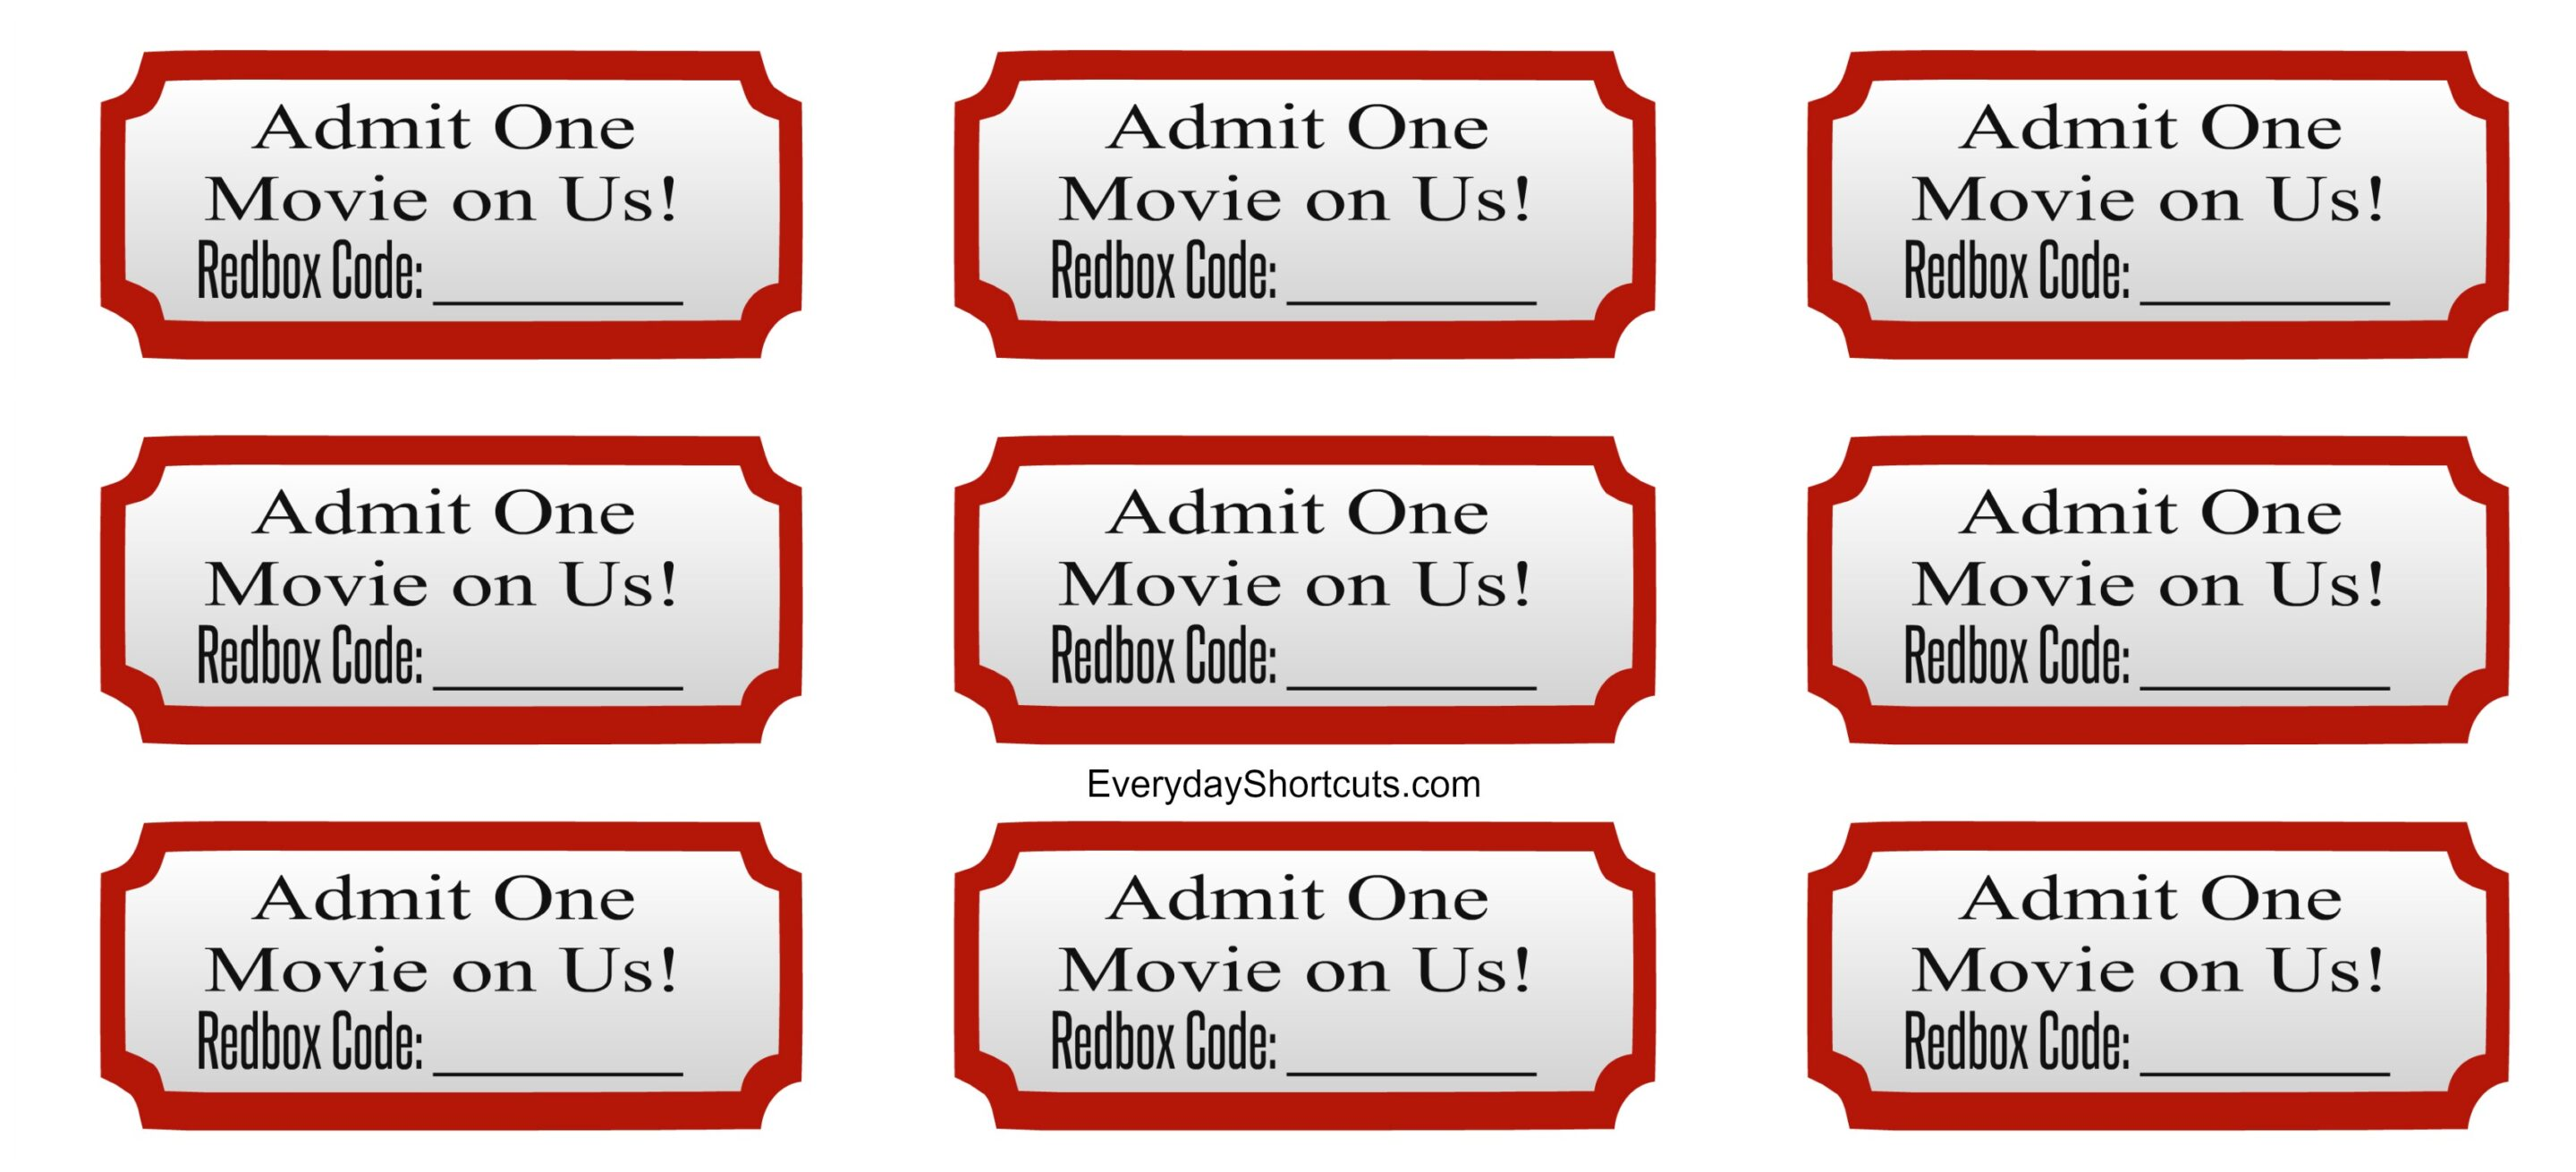 admit one movie on us